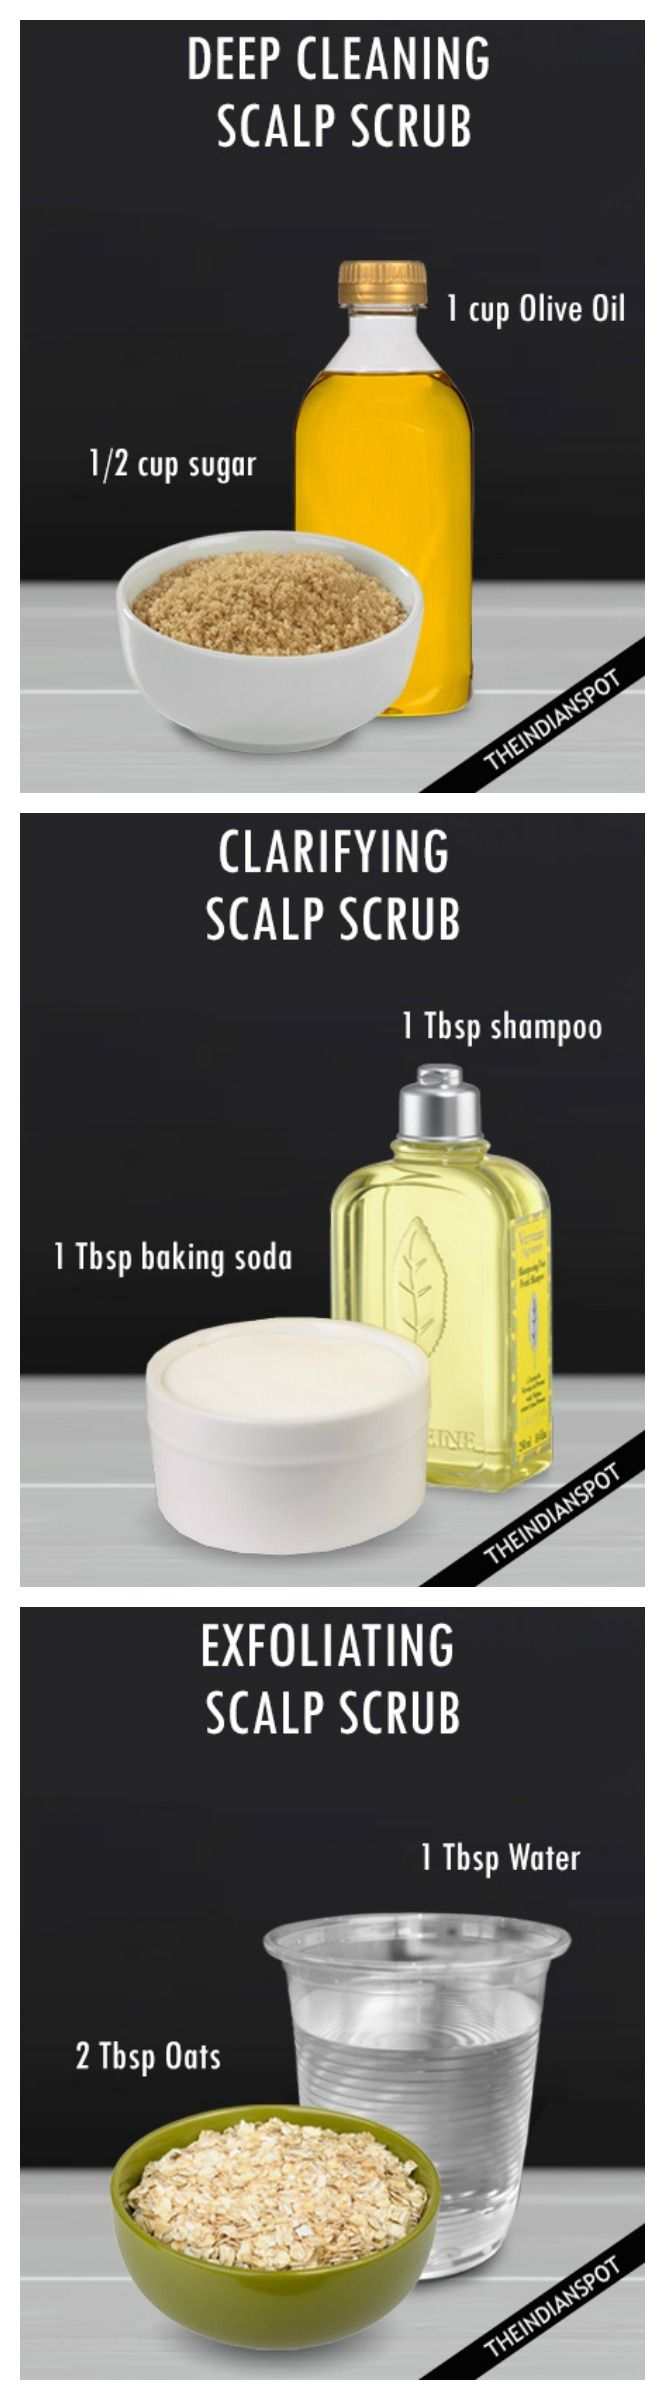 Deep Cleansing with 3 DIY natural Scalp scrubs